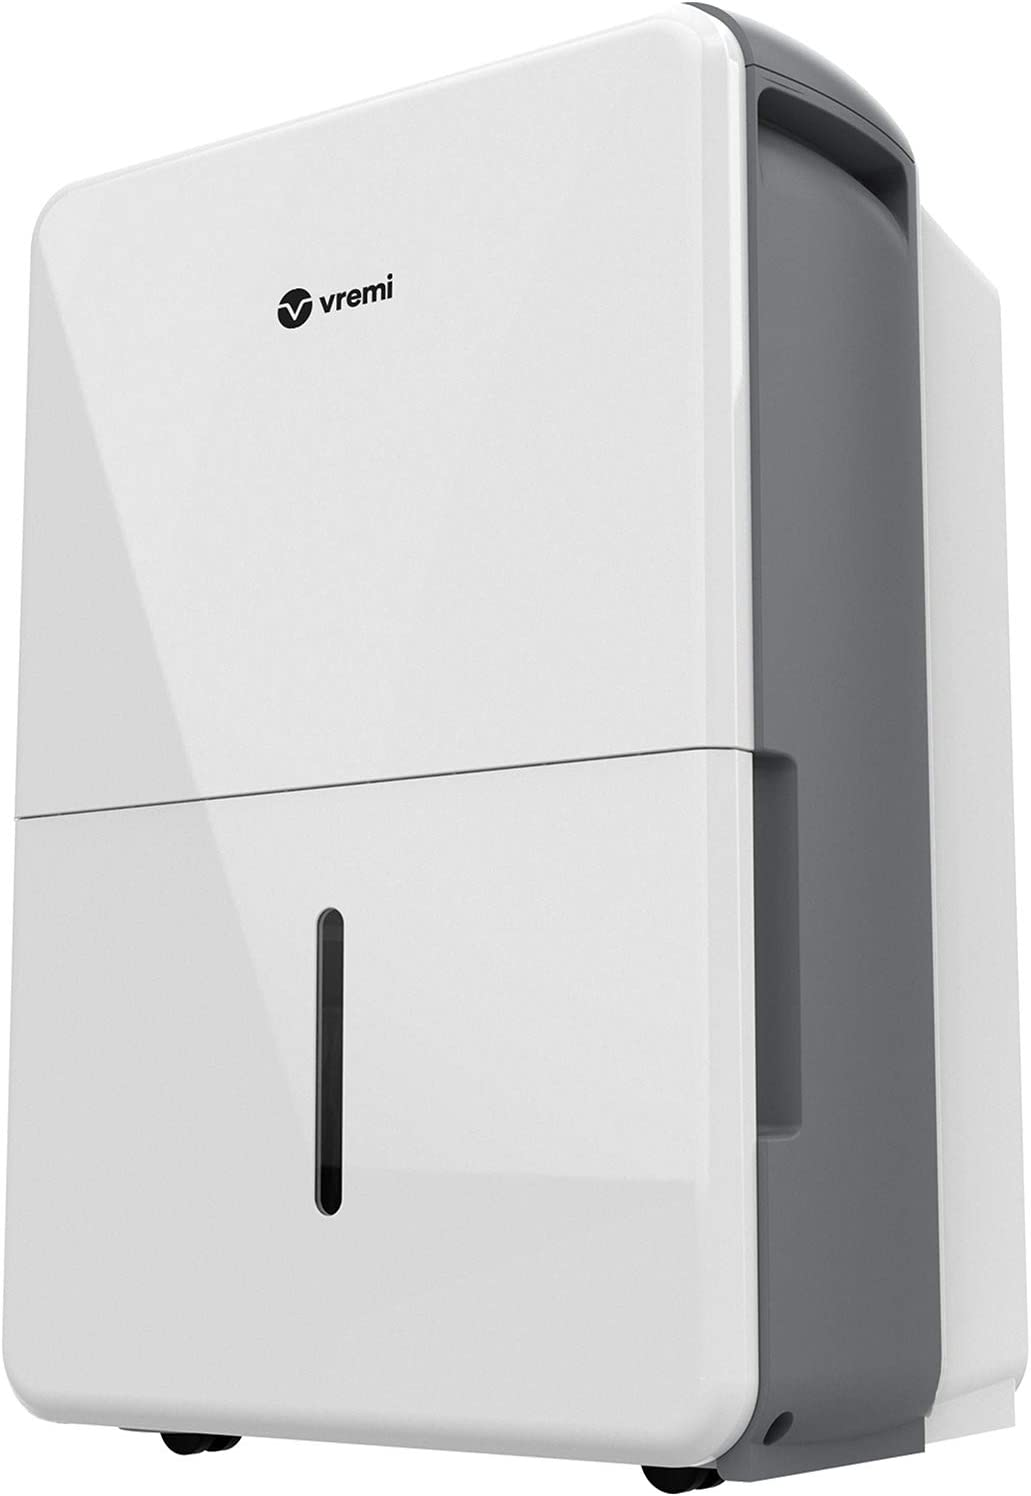 Vremi 3,000 Sq. Ft. Dehumidifier Energy Star Rated for Medium Spaces and Basements - Quietly Removes Moisture to Prevent Mold and Mildew